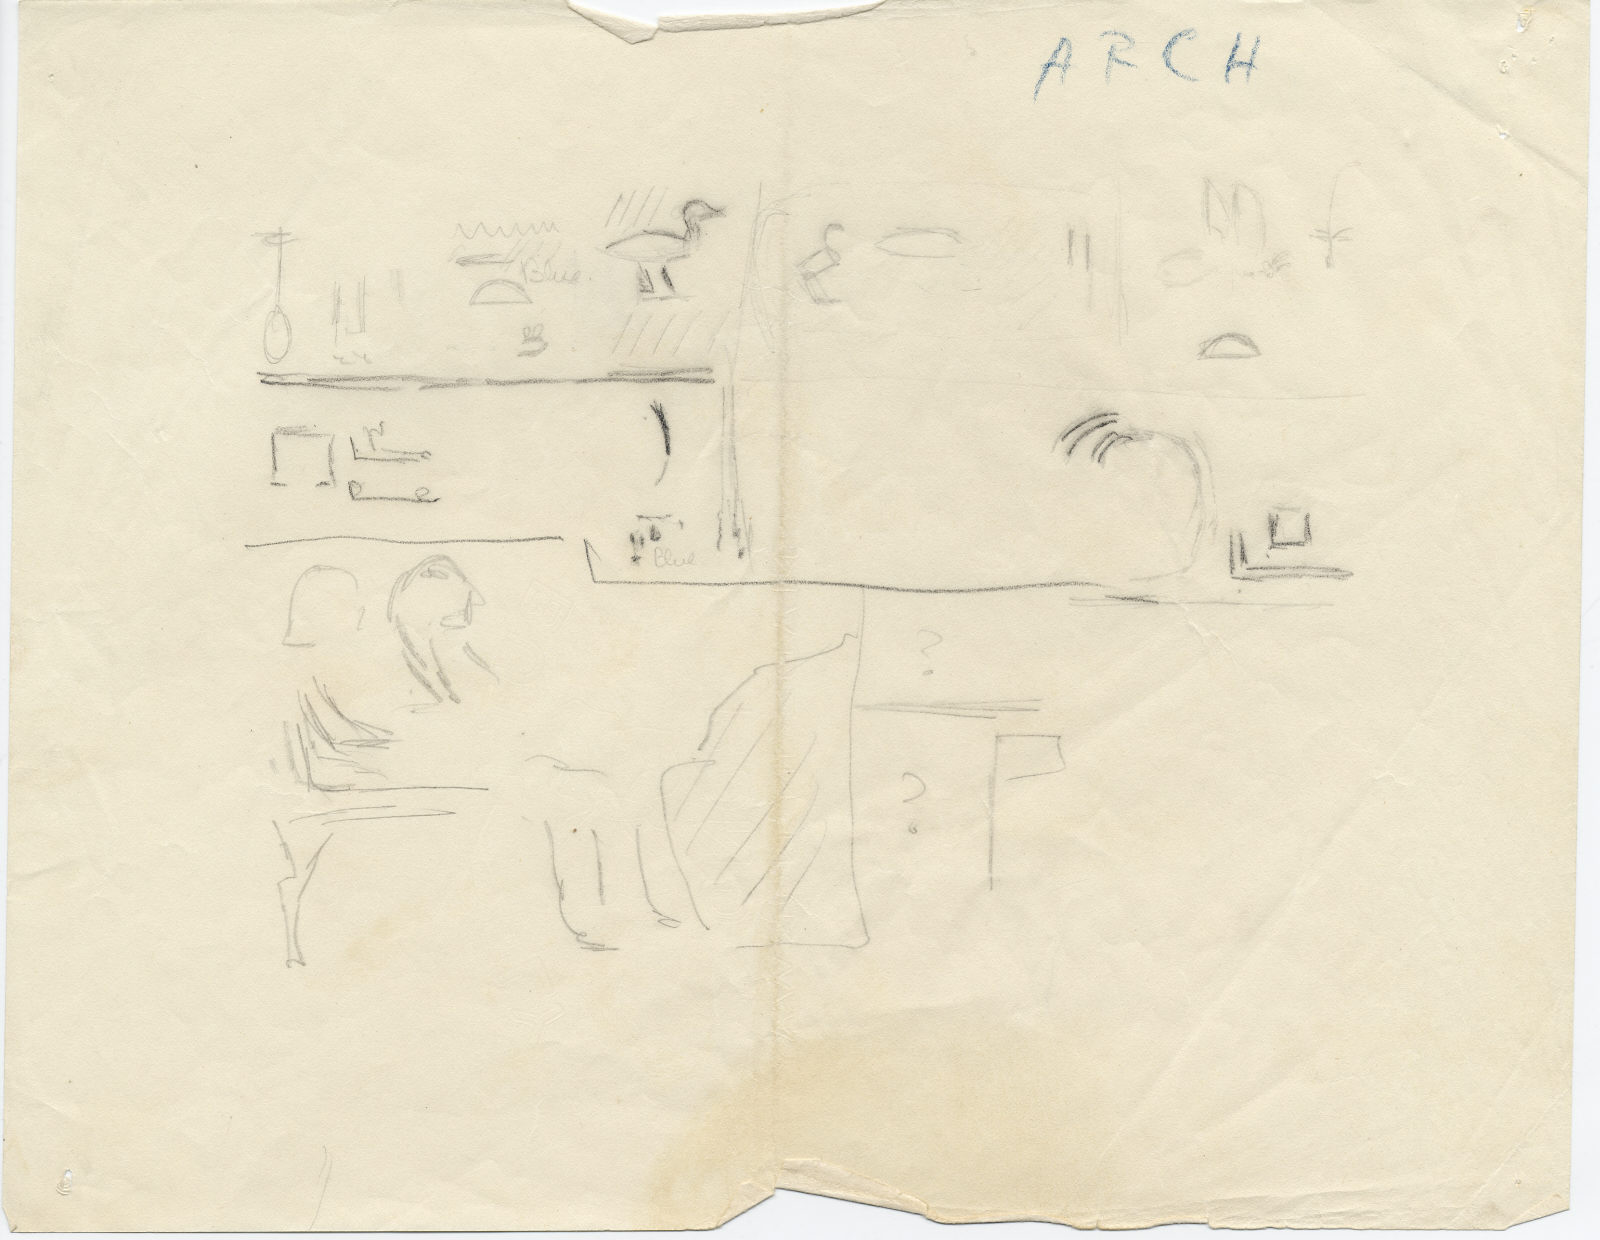 Drawings: G 7060: sketch and notes regarding W wall, S end, architrave over false door